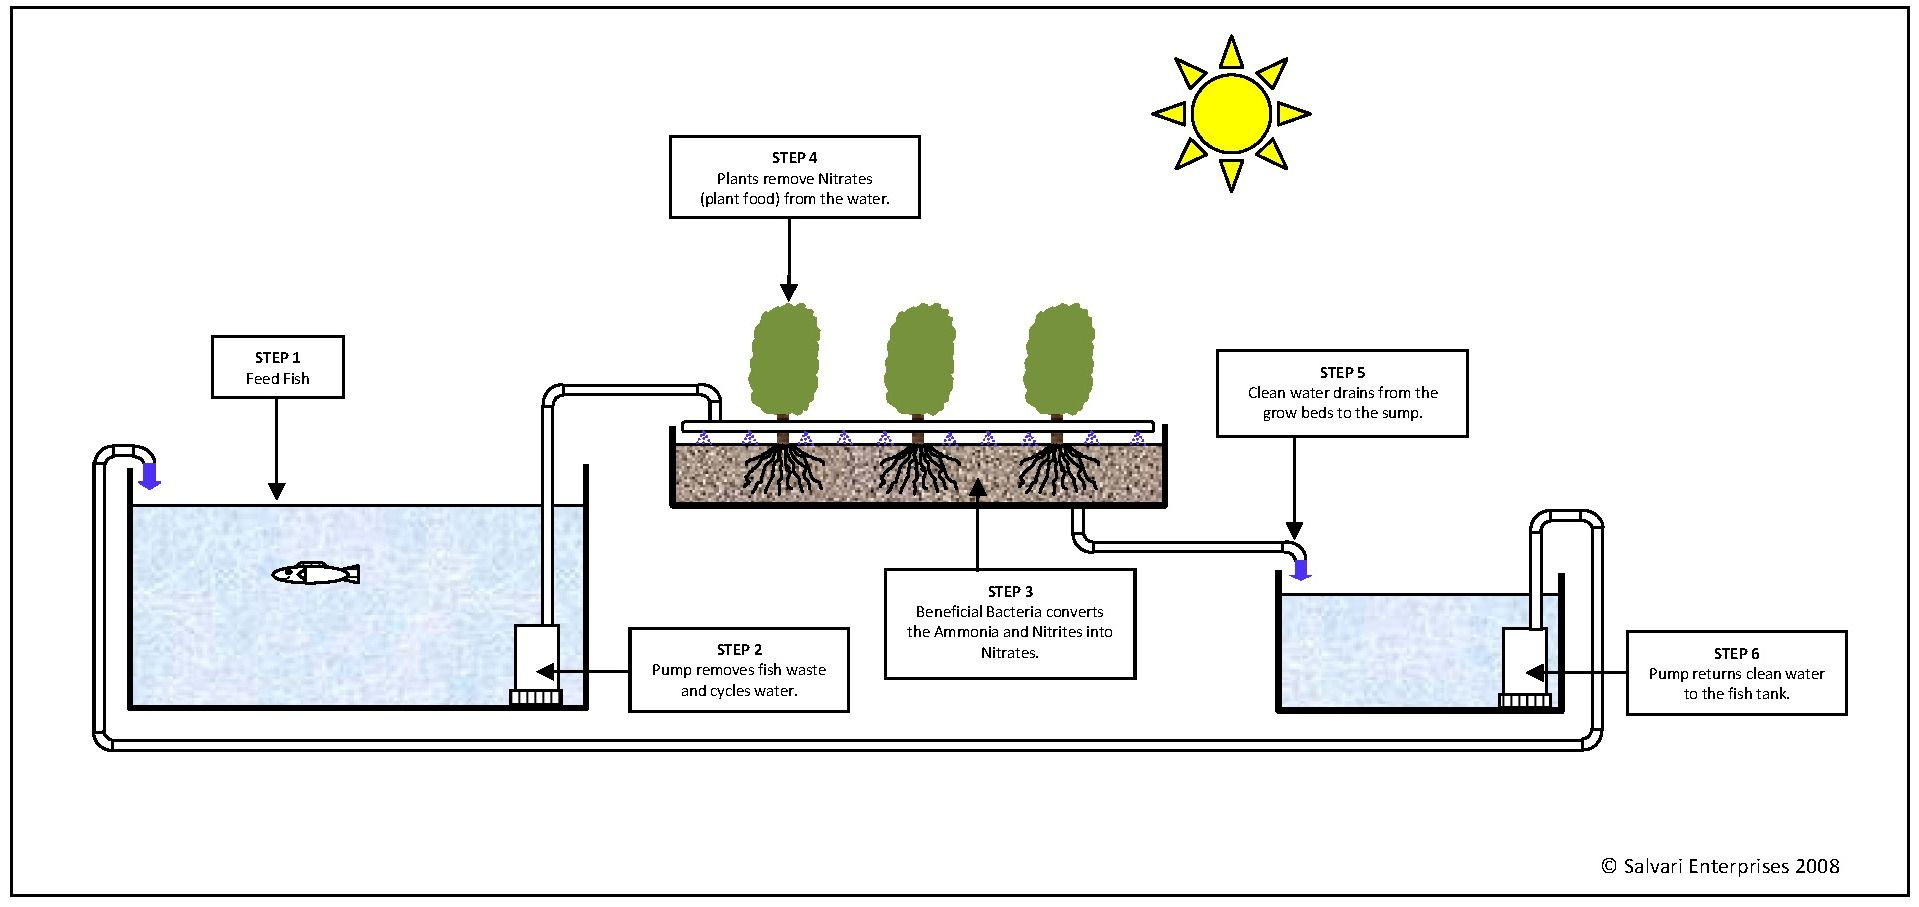 diagram of aquaponic wiring diagram used diagram of aquaponics aquaponics diagram check out my personal aquaponics [ 1919 x 907 Pixel ]